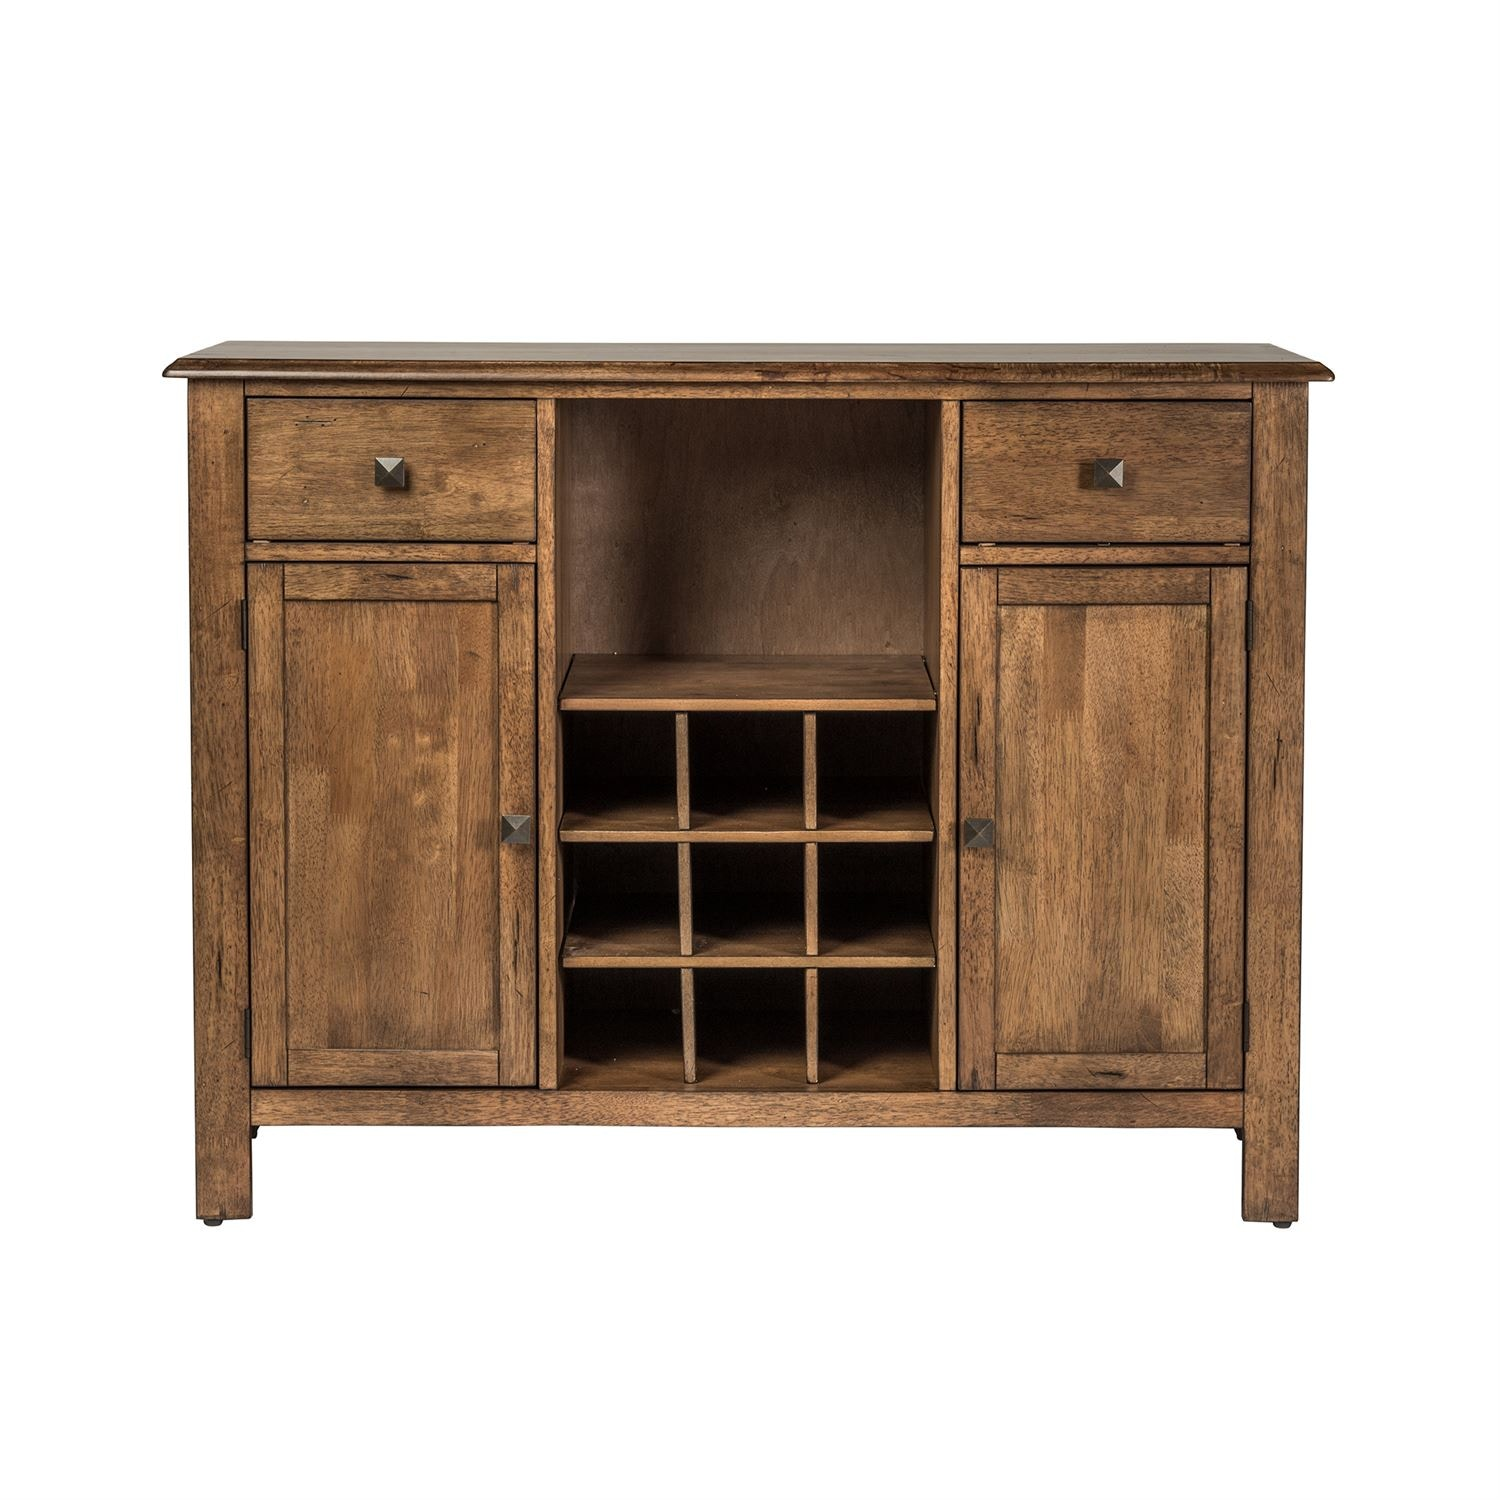 Bon Liberty Furniture Dining Room Server 186 SR4836   Woodcrafters Furniture    Murray, KY